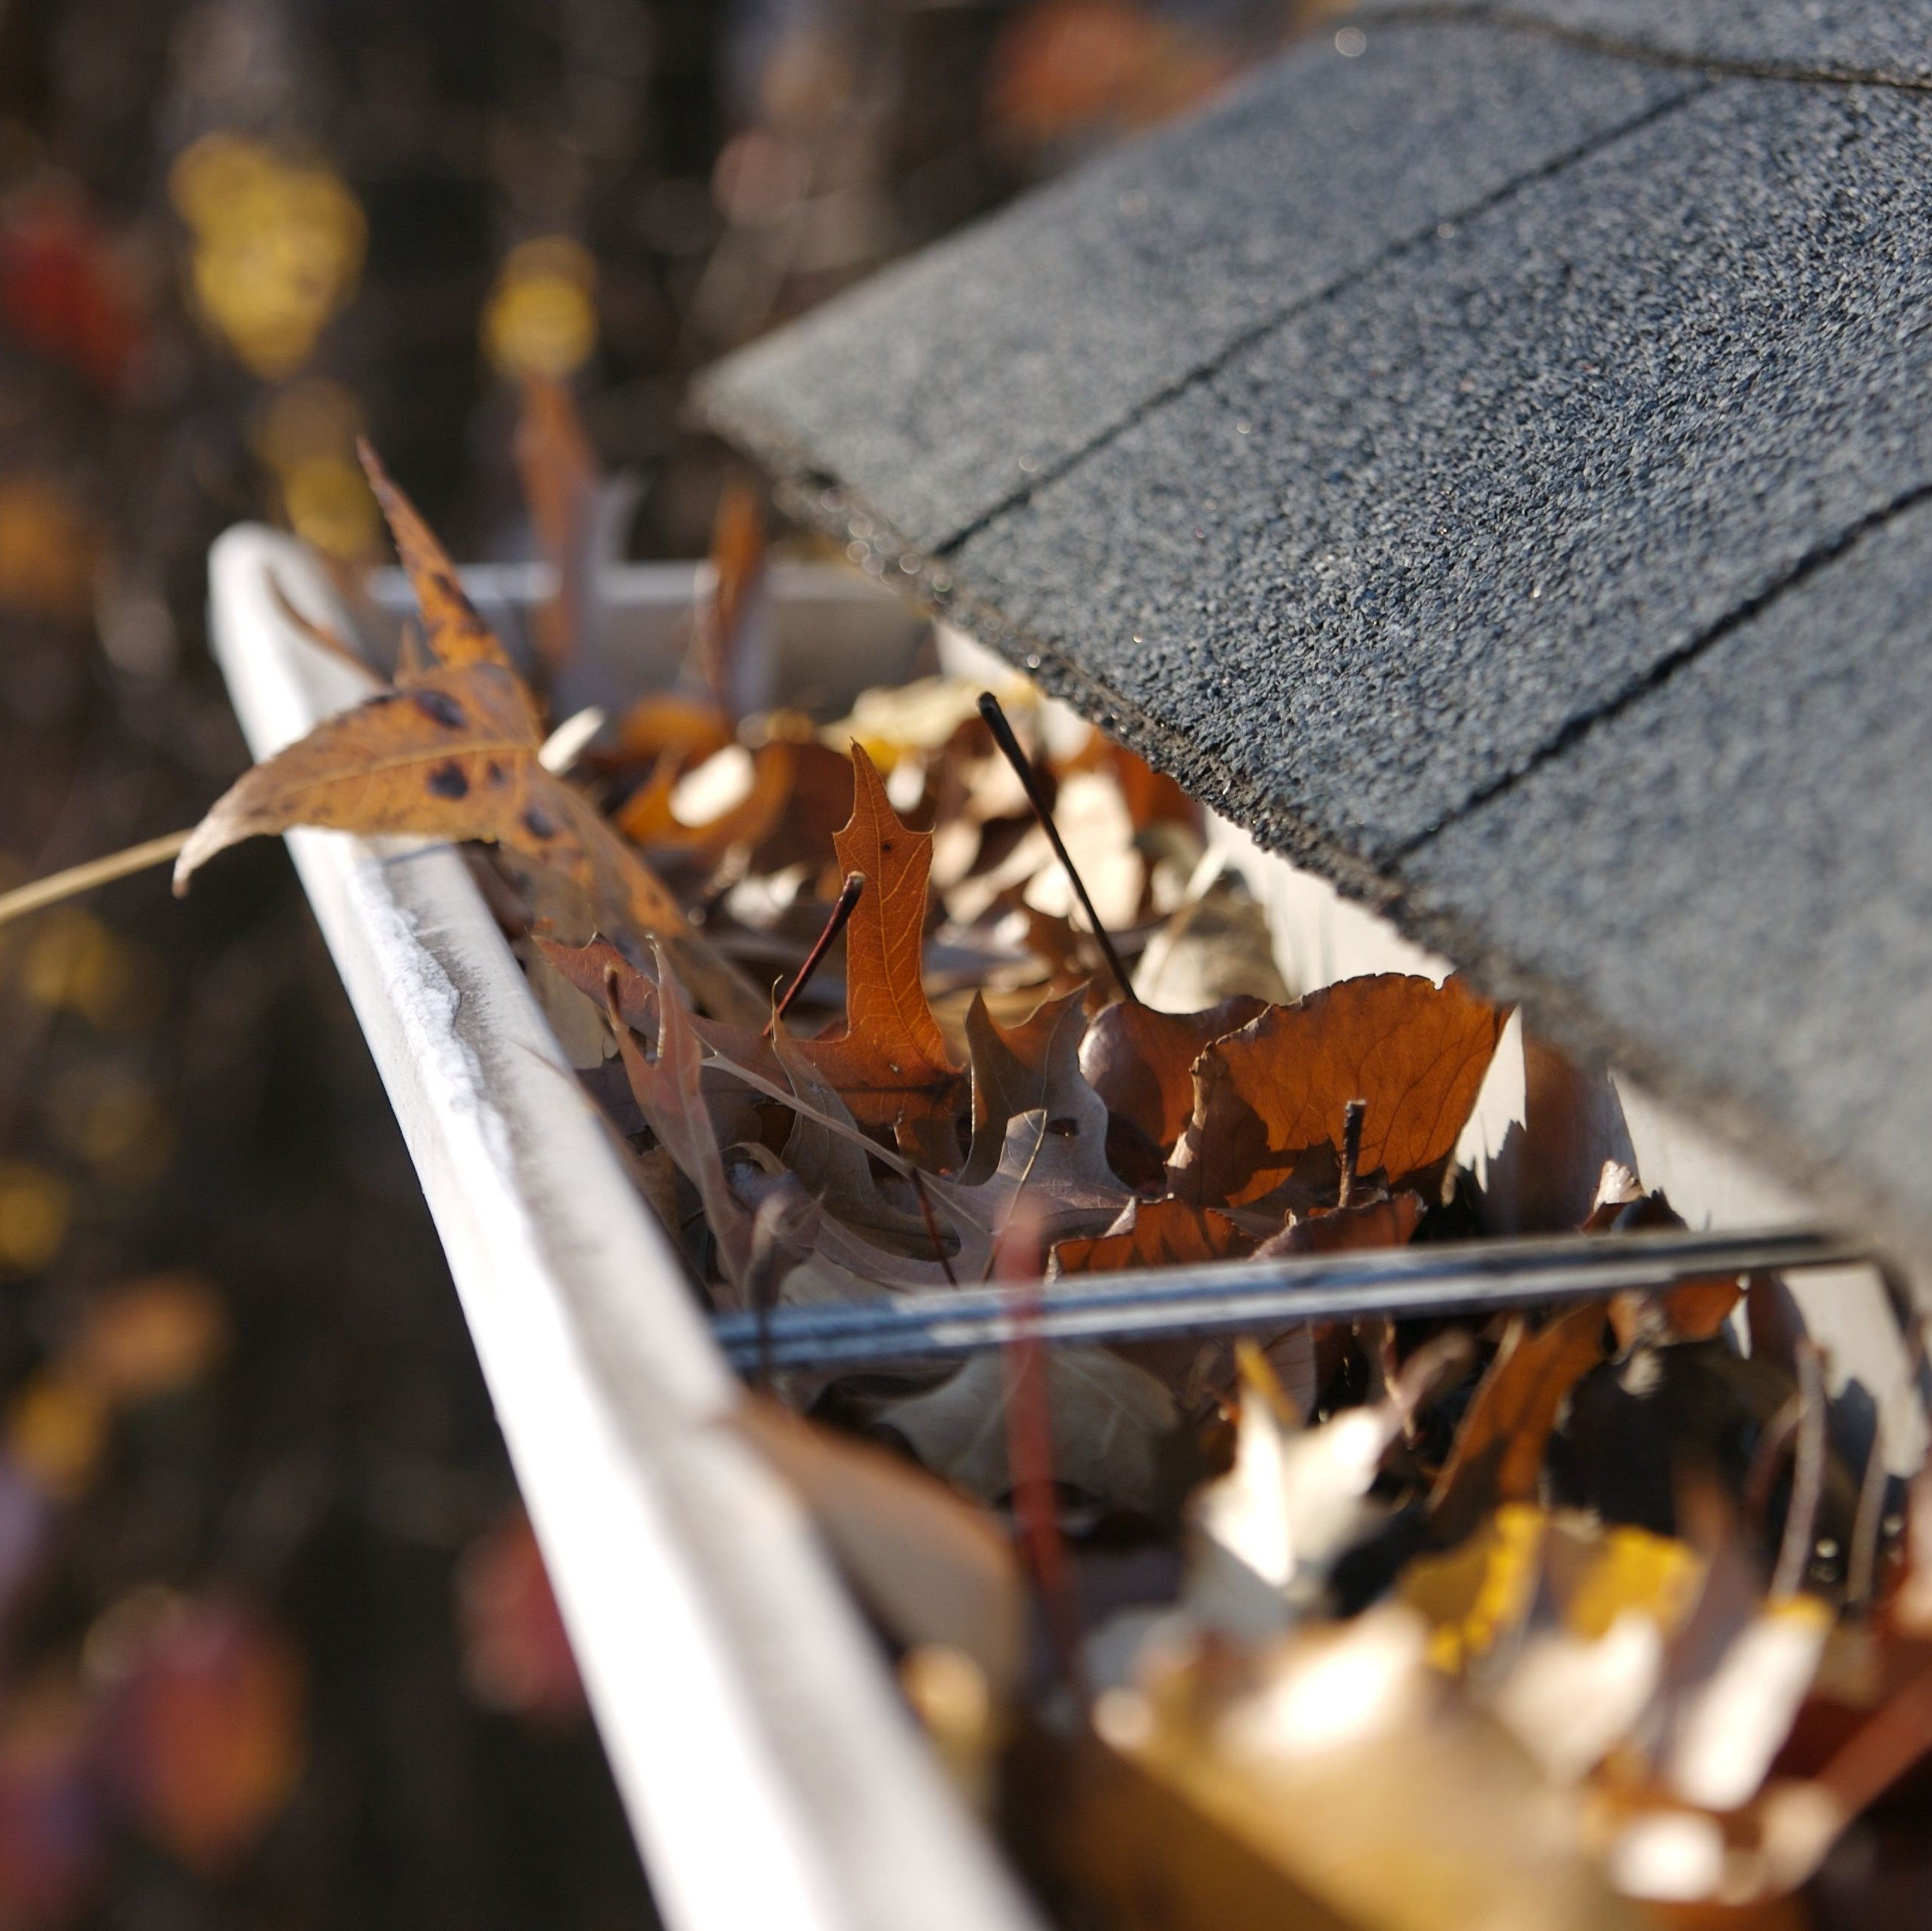 A close up of a gutter than needs to be cleaned out.